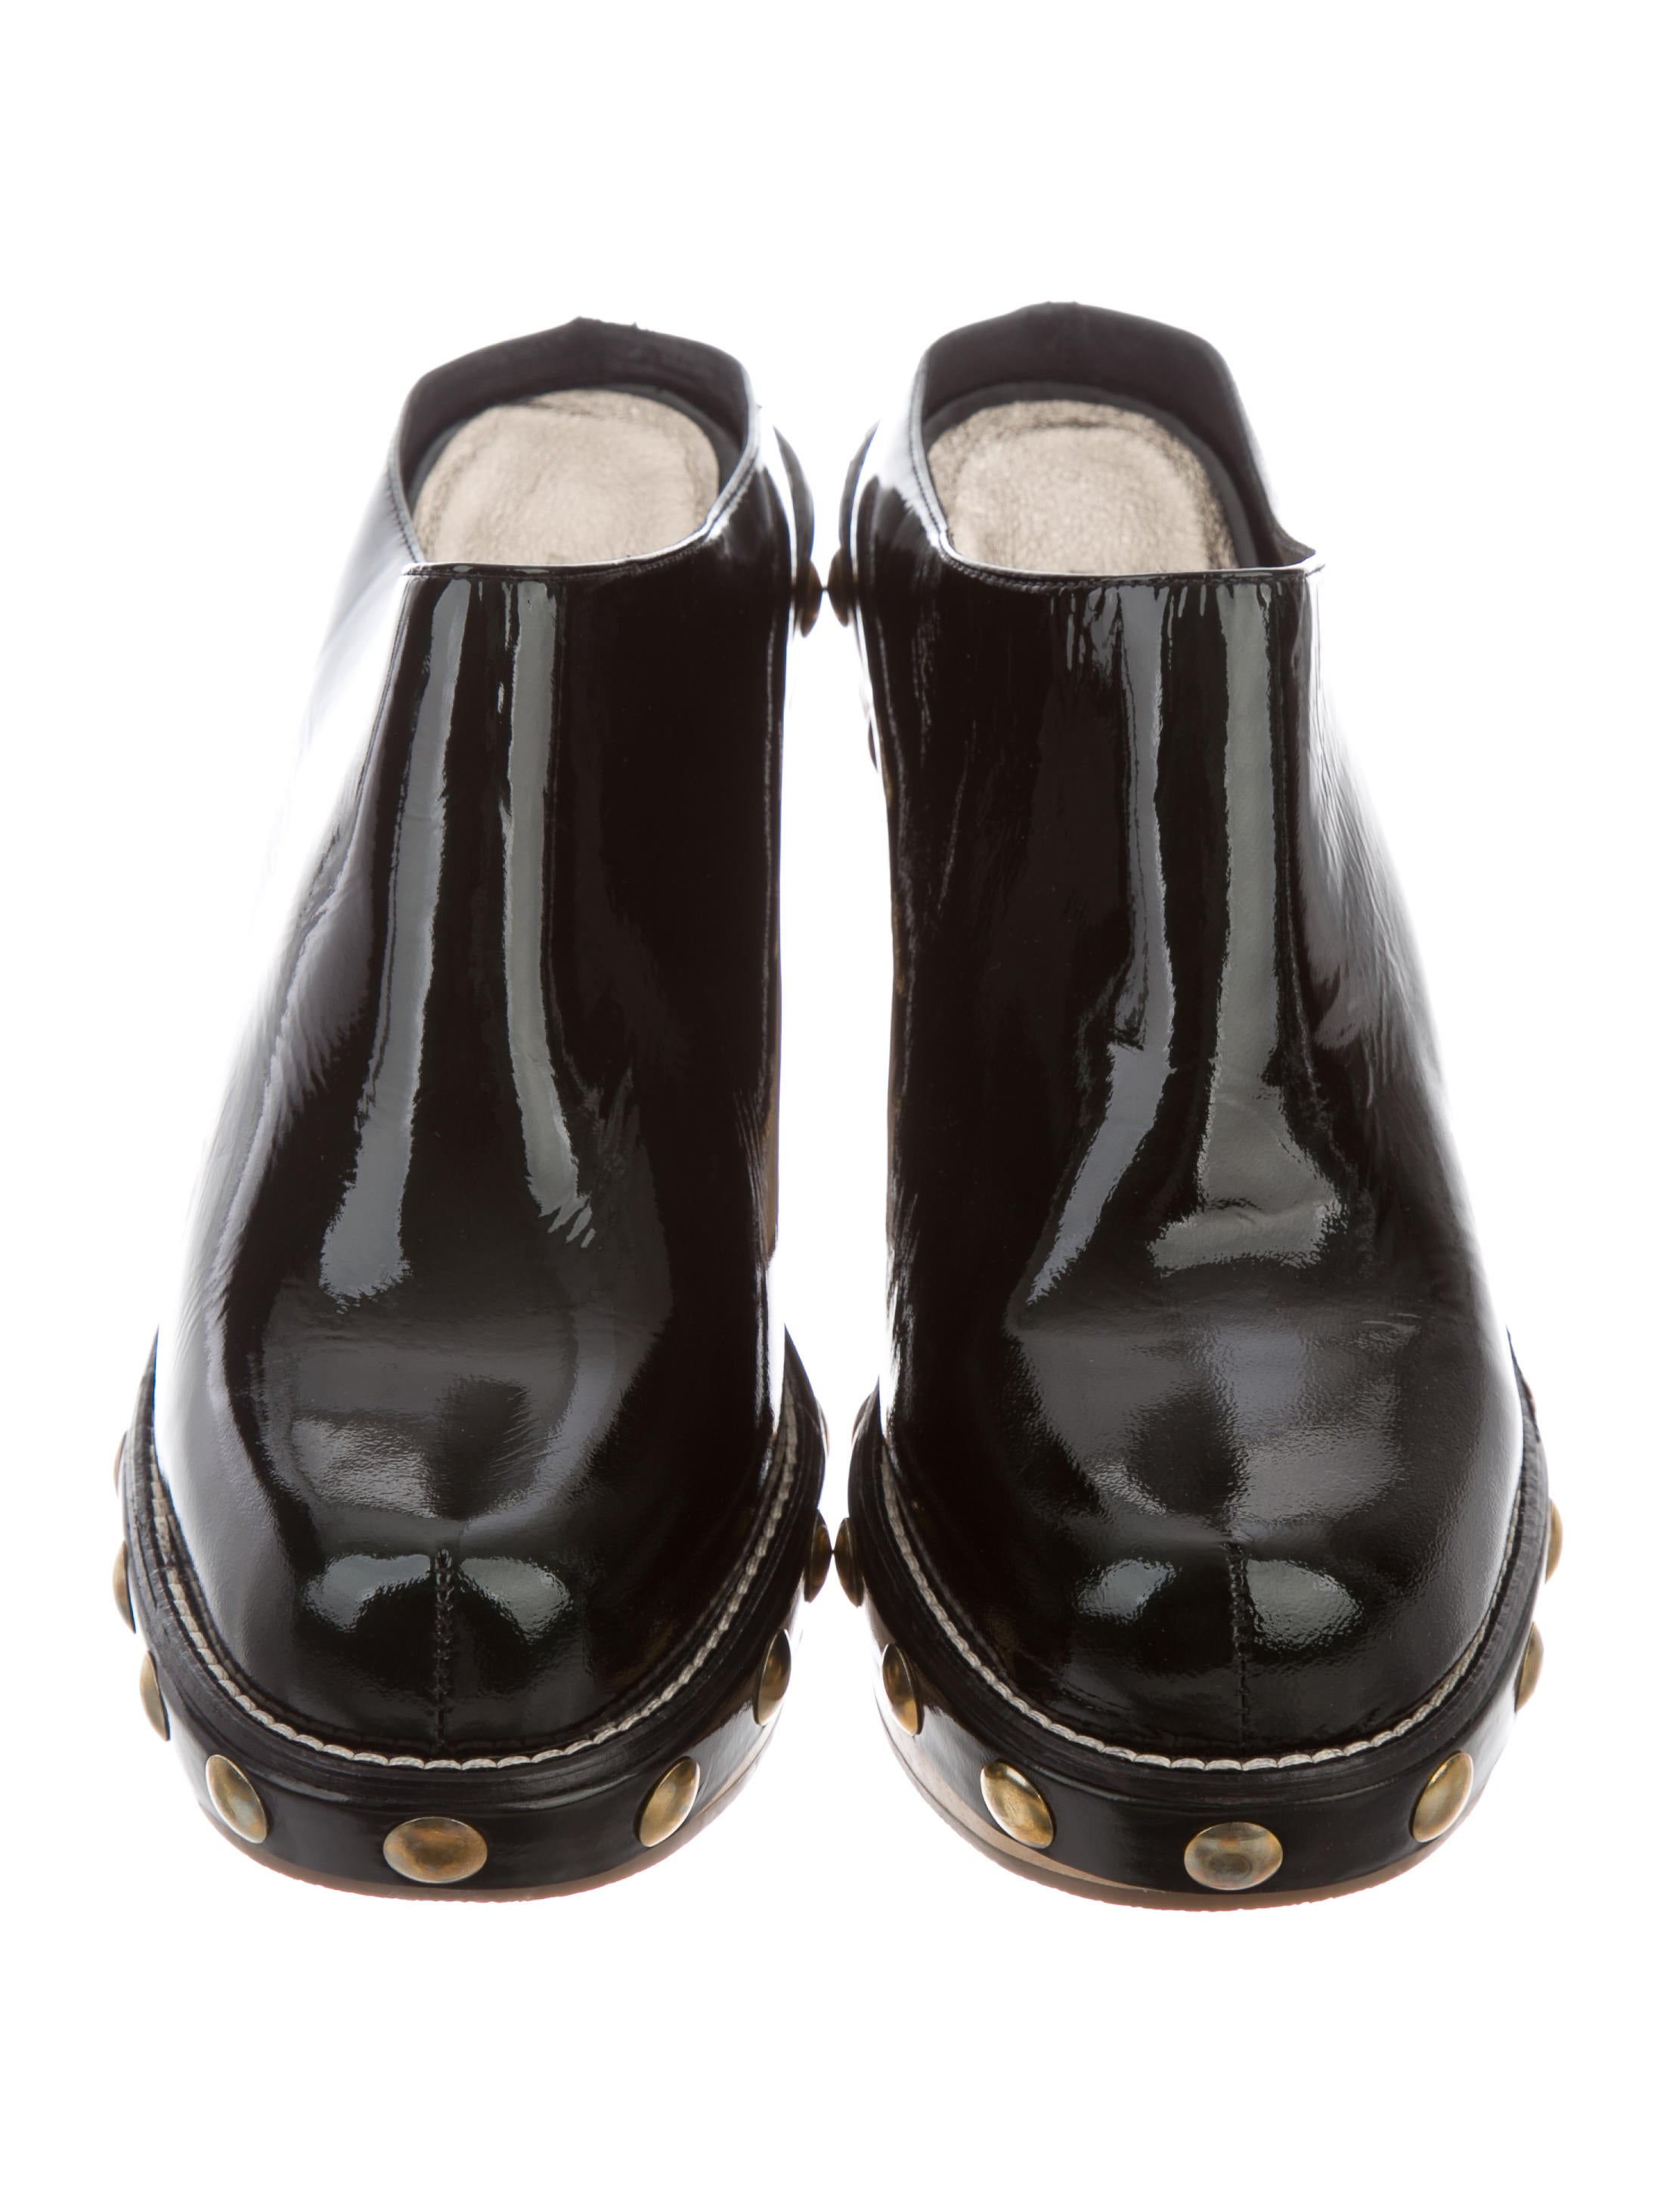 Rachel Comey Patent Leather Power Clogs w/ Tags how much sale online outlet professional clearance official discount codes really cheap YrZbmgnzw